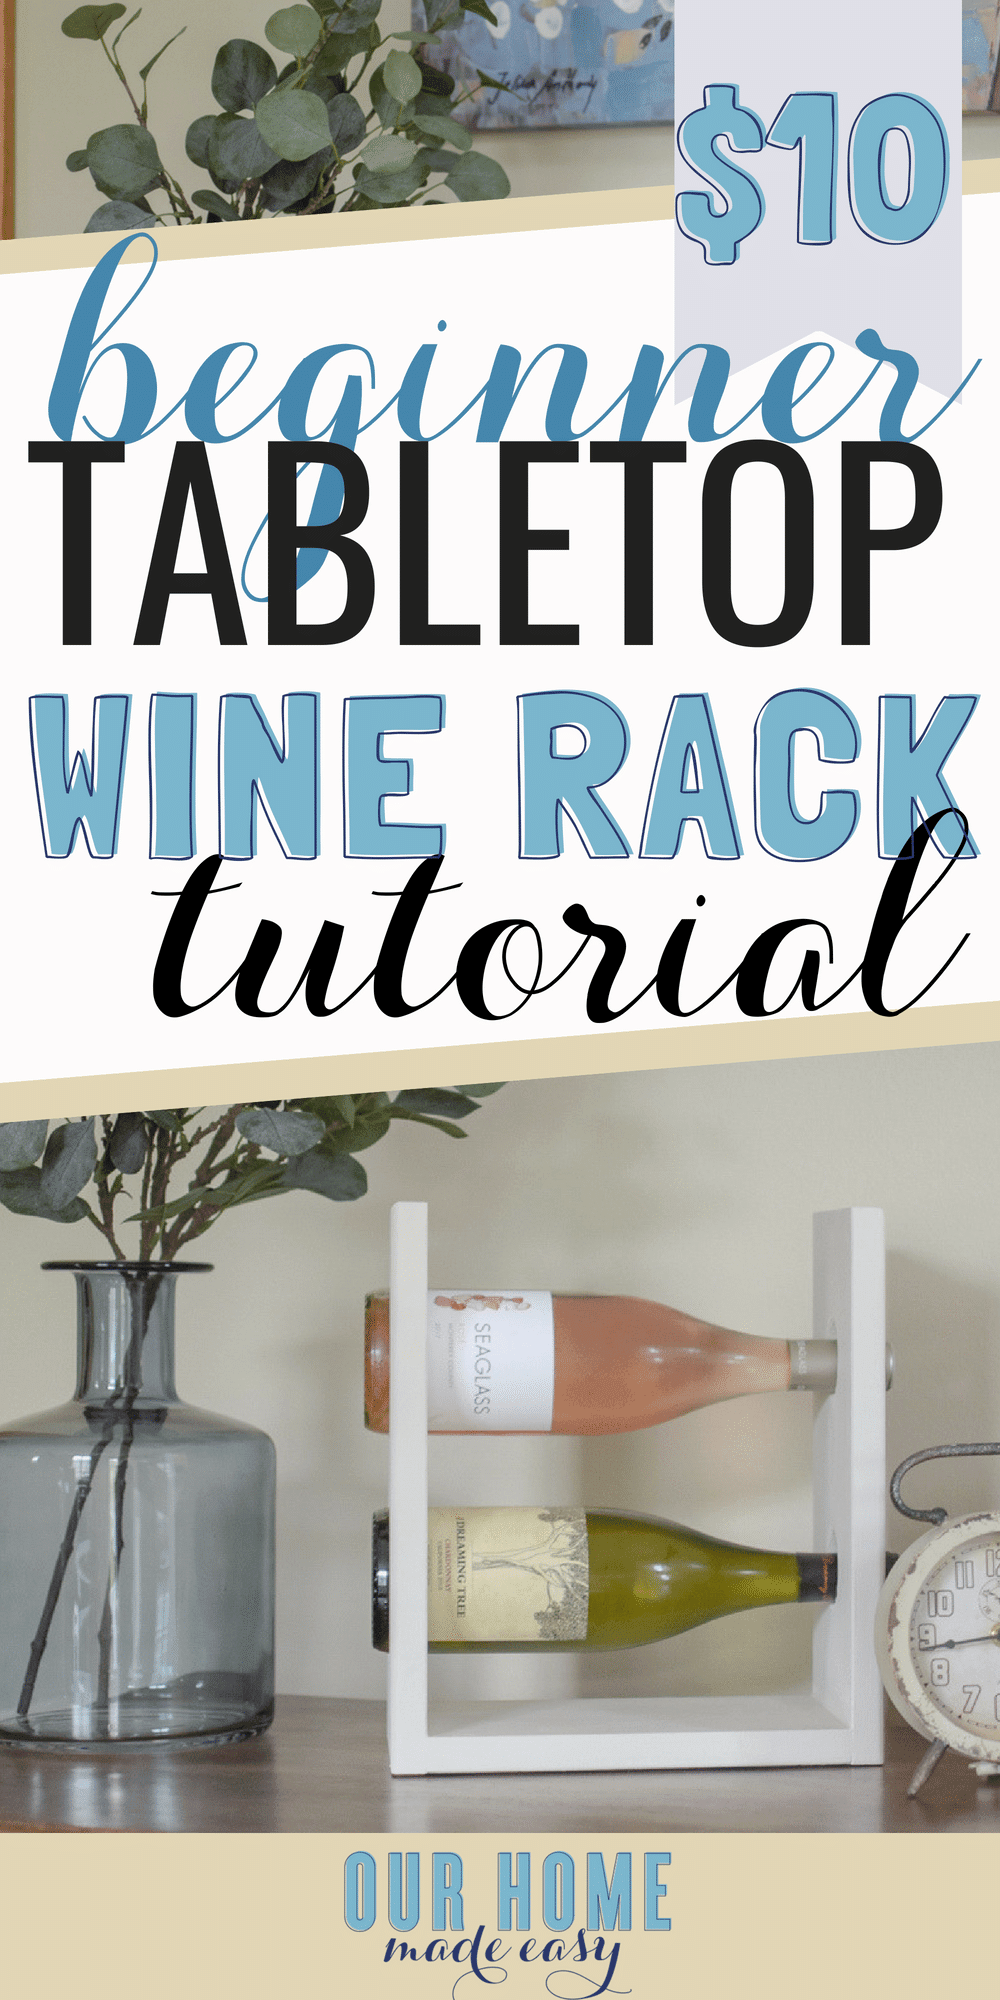 This DIY wine rack is perfect for holding 2 bottles on a table top! Simply use your Kreg Jig and a few other tools to build it for just a few dollars!  #wine #DIY #home #winerack #homeproject